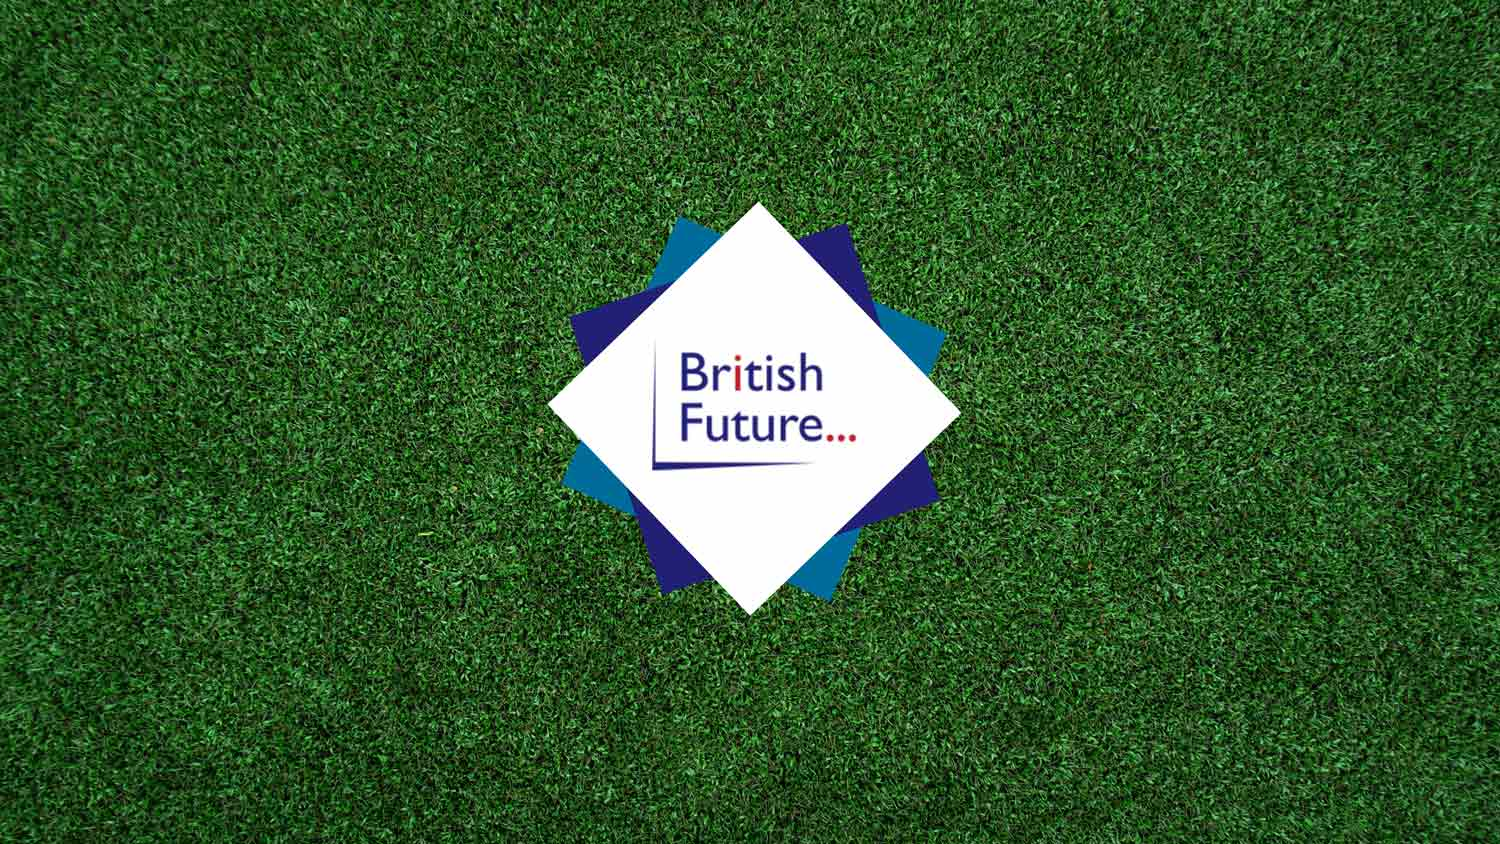 VIDEO: Find out more about British Future